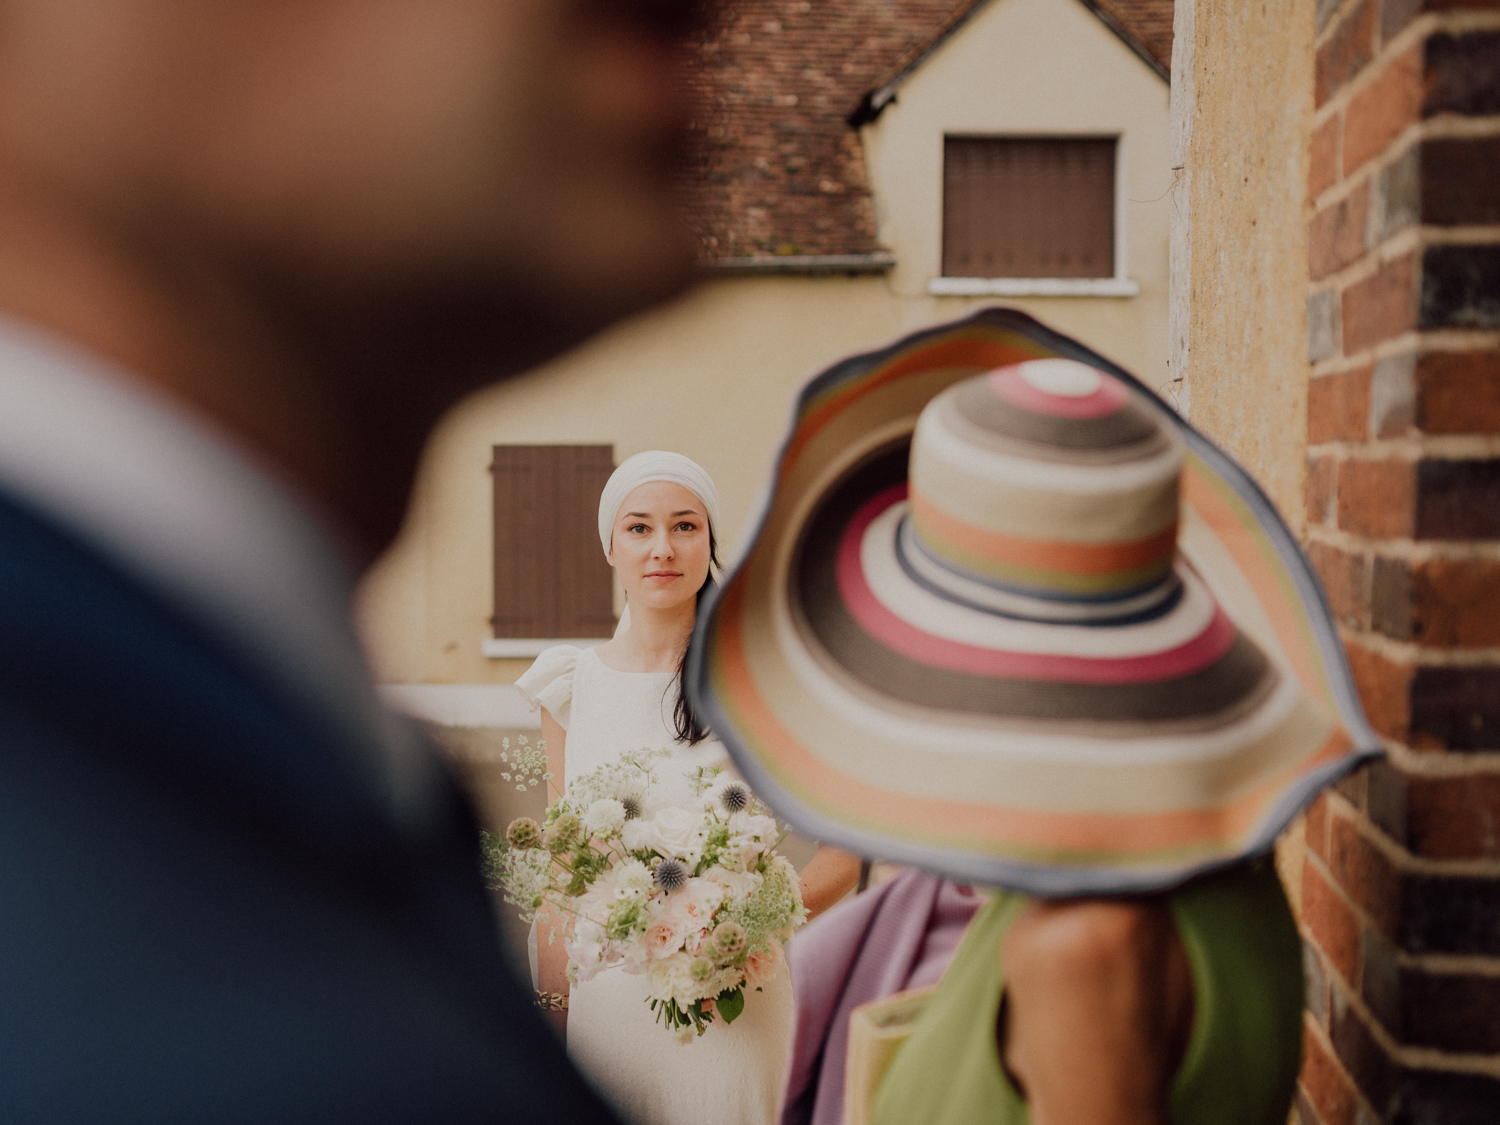 capyture-wedding-photographer-destination-mariage-bourgogne-346